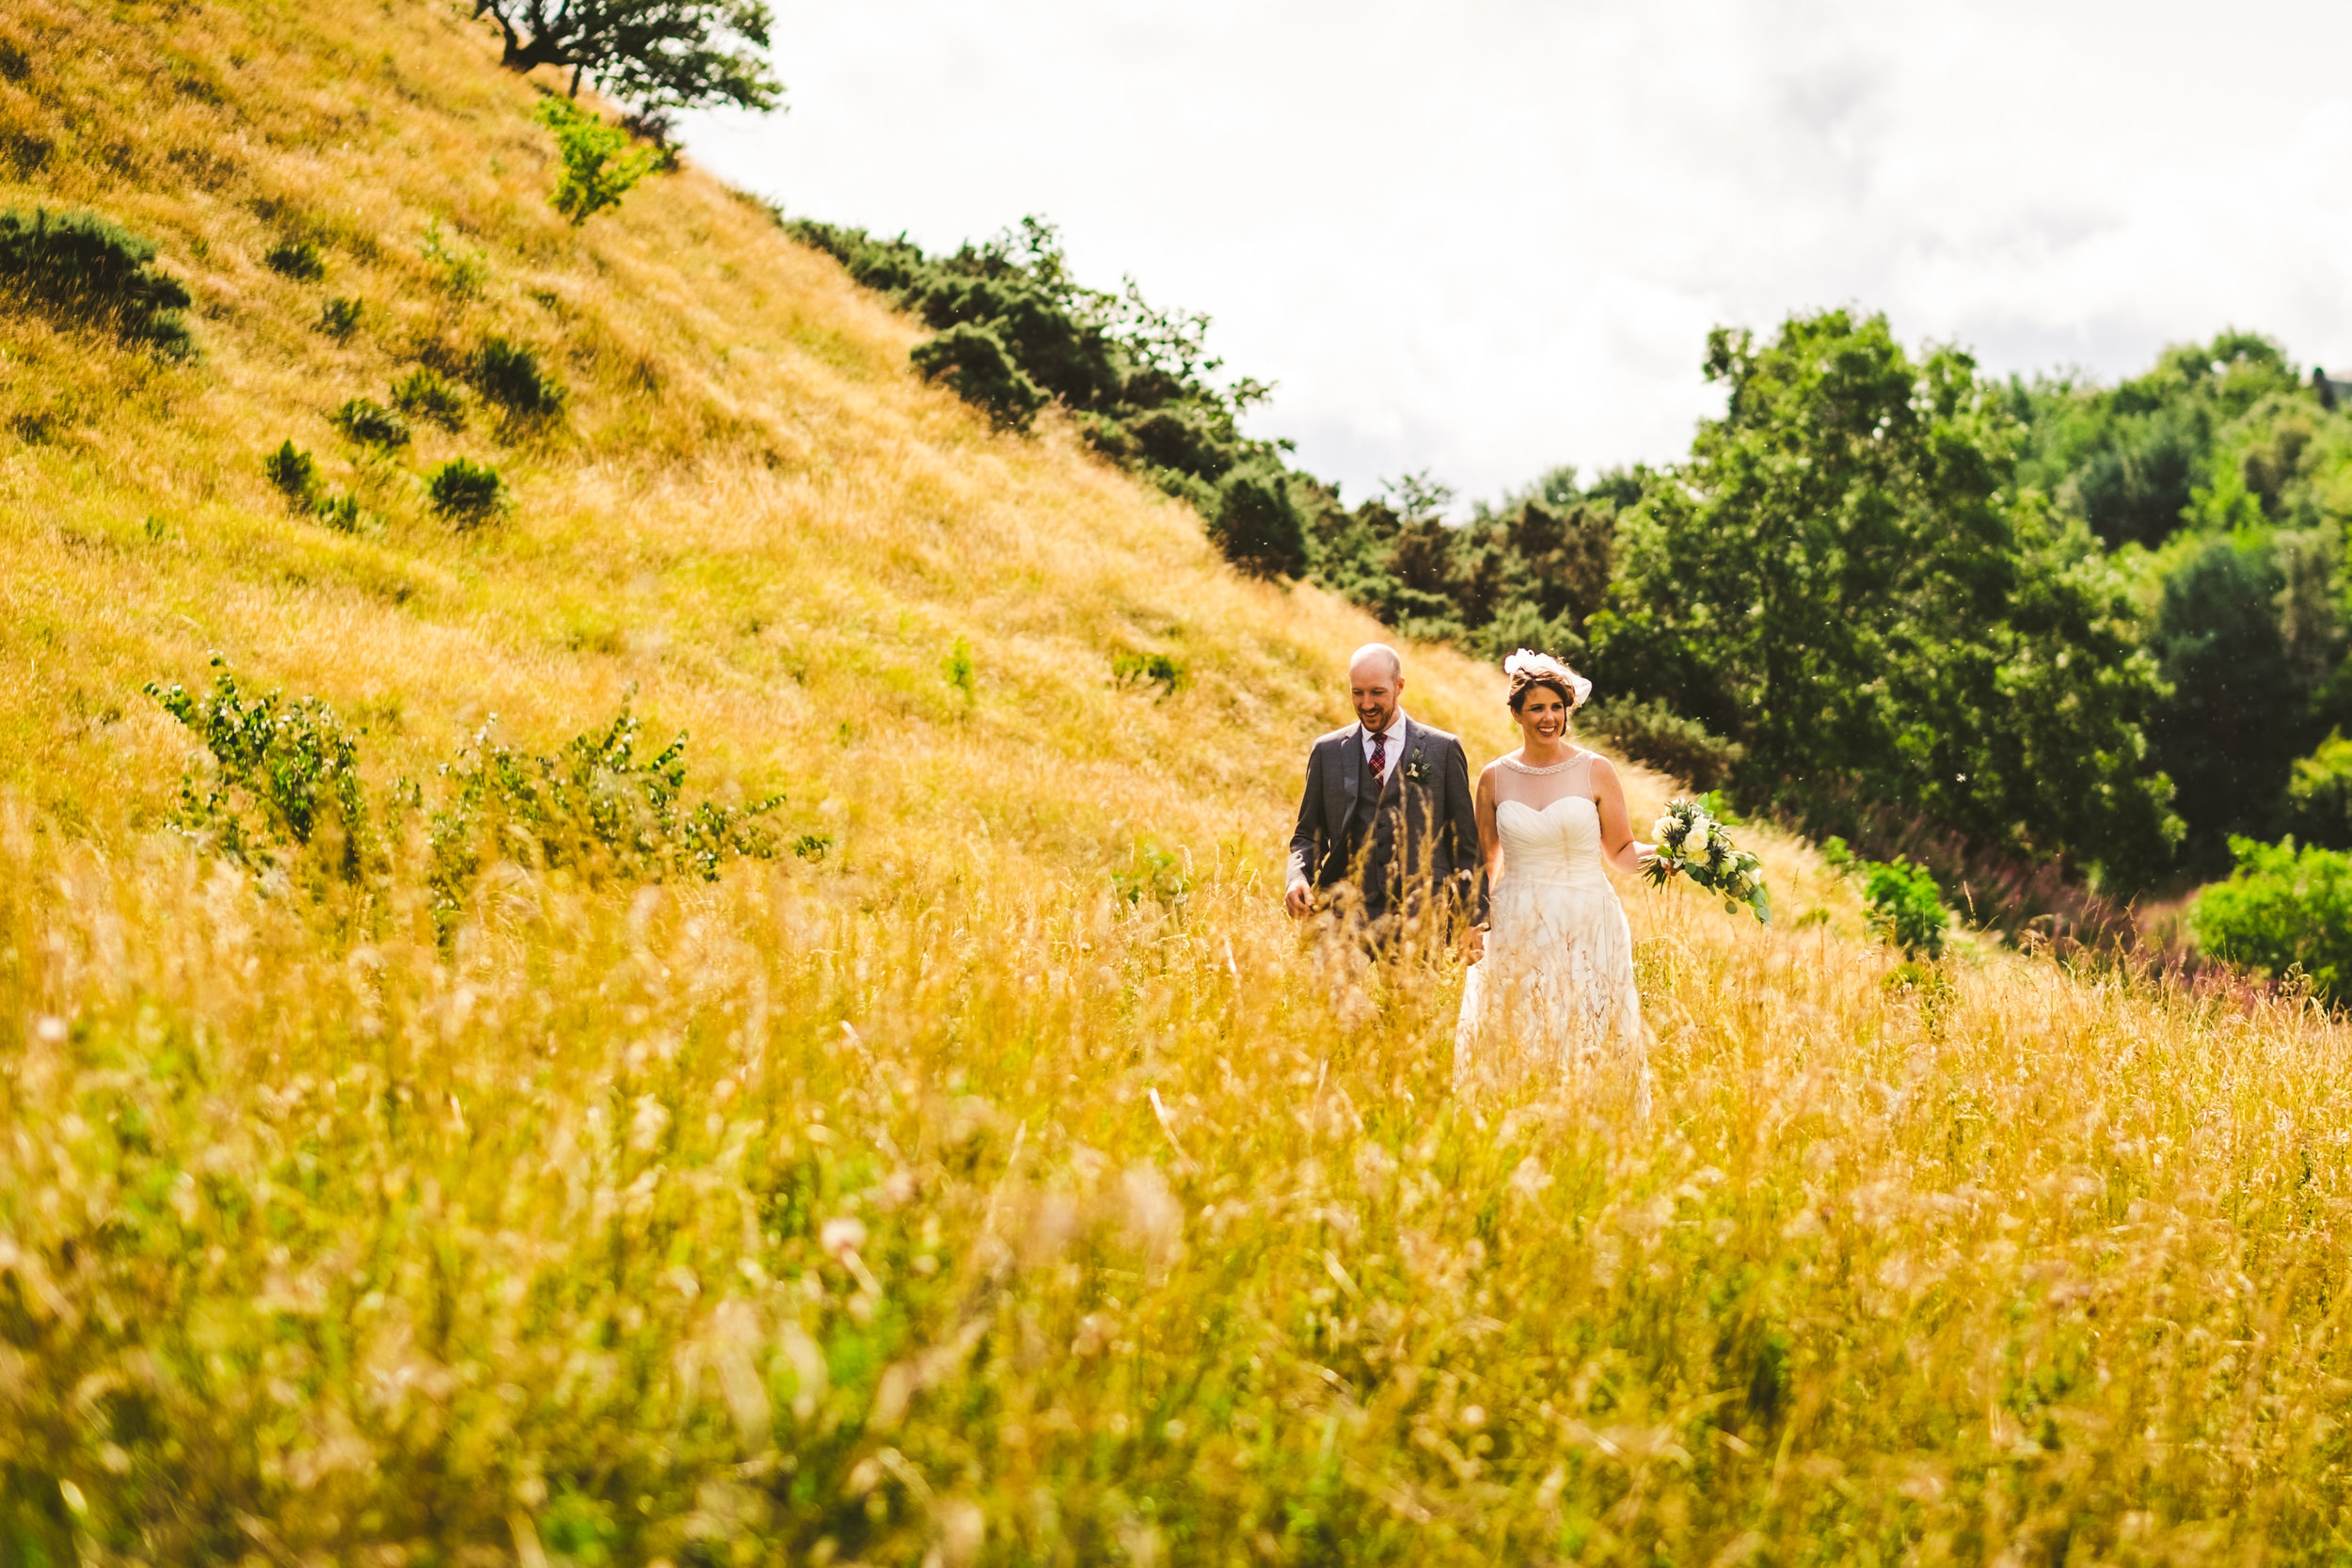 2nd photographer - £150 - - Great if you have a particularly large wedding (150+ guests) or large wedding venue- Ideal if you are getting ready far apart but want prep photos of you both